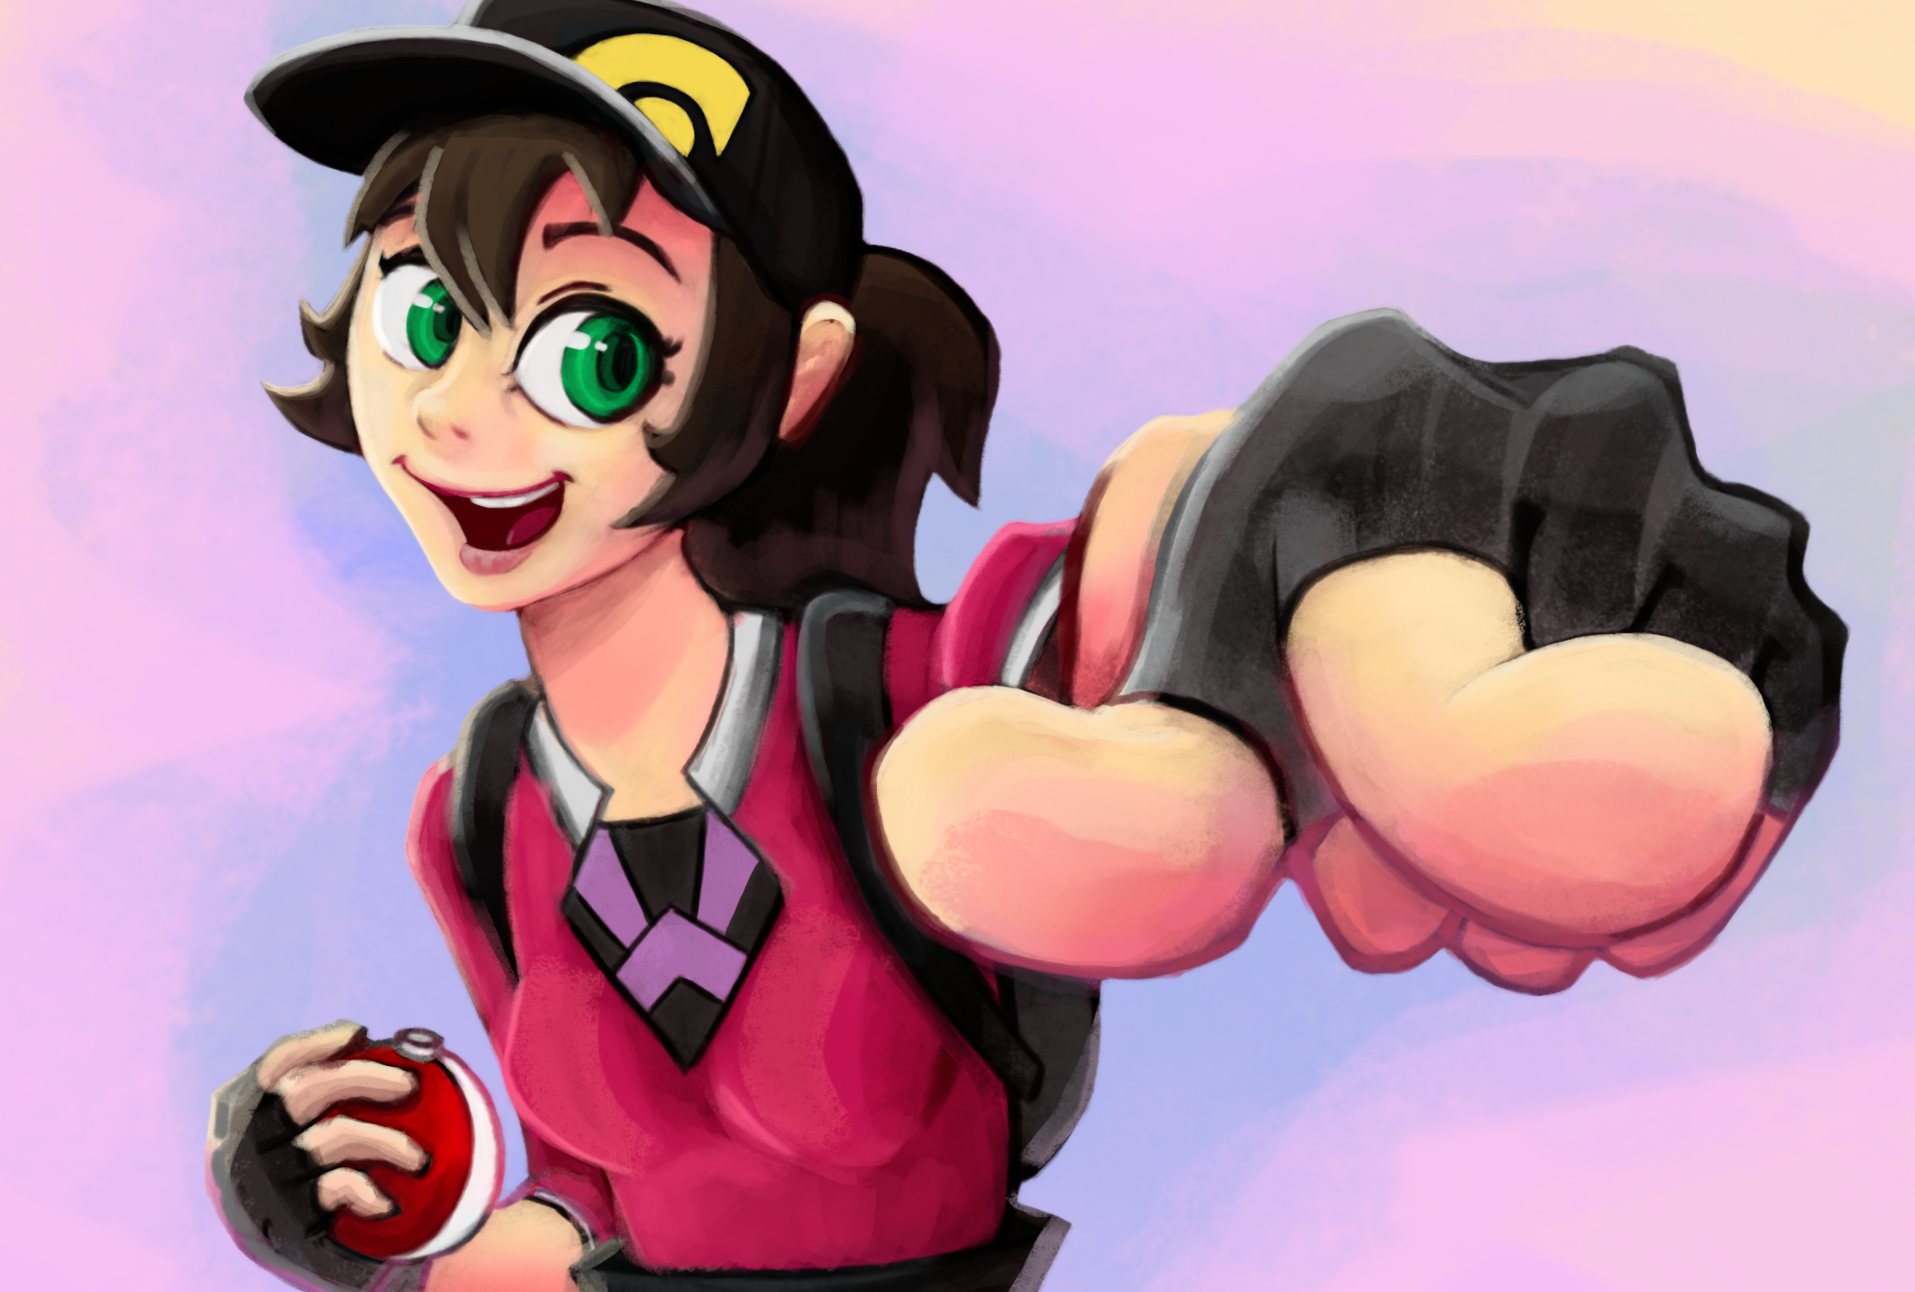 3722201_147223730621_Pokegirl-crop.png